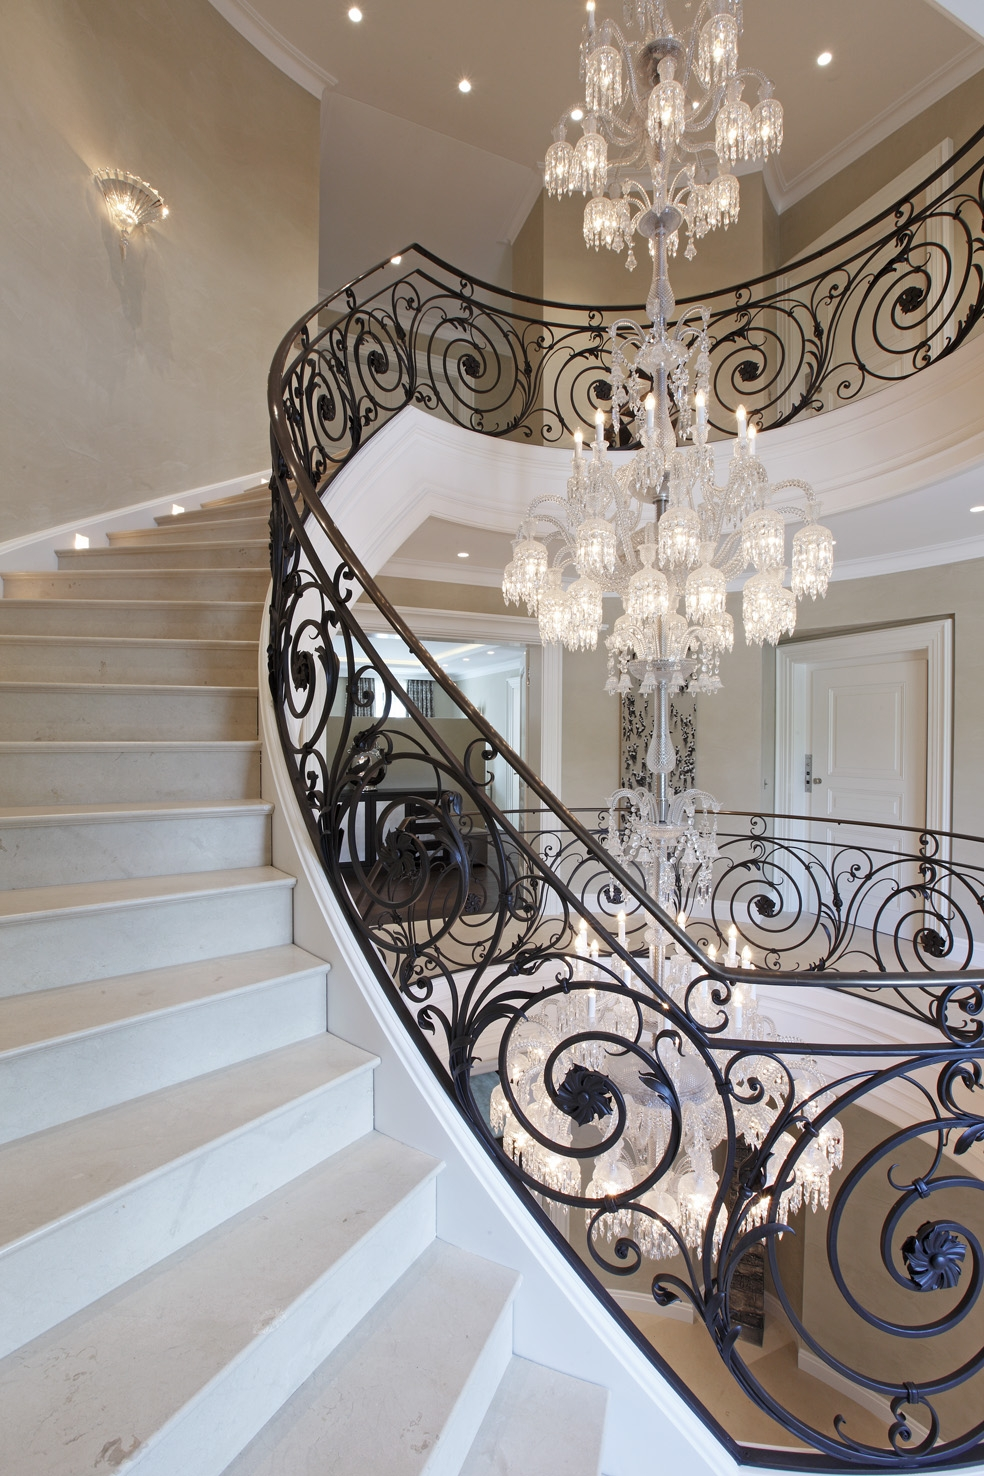 12 ideas of staircase chandeliers baccarat chandelier villa privestunning wrought iron stair with staircase chandeliers 5 of 12 aloadofball Image collections